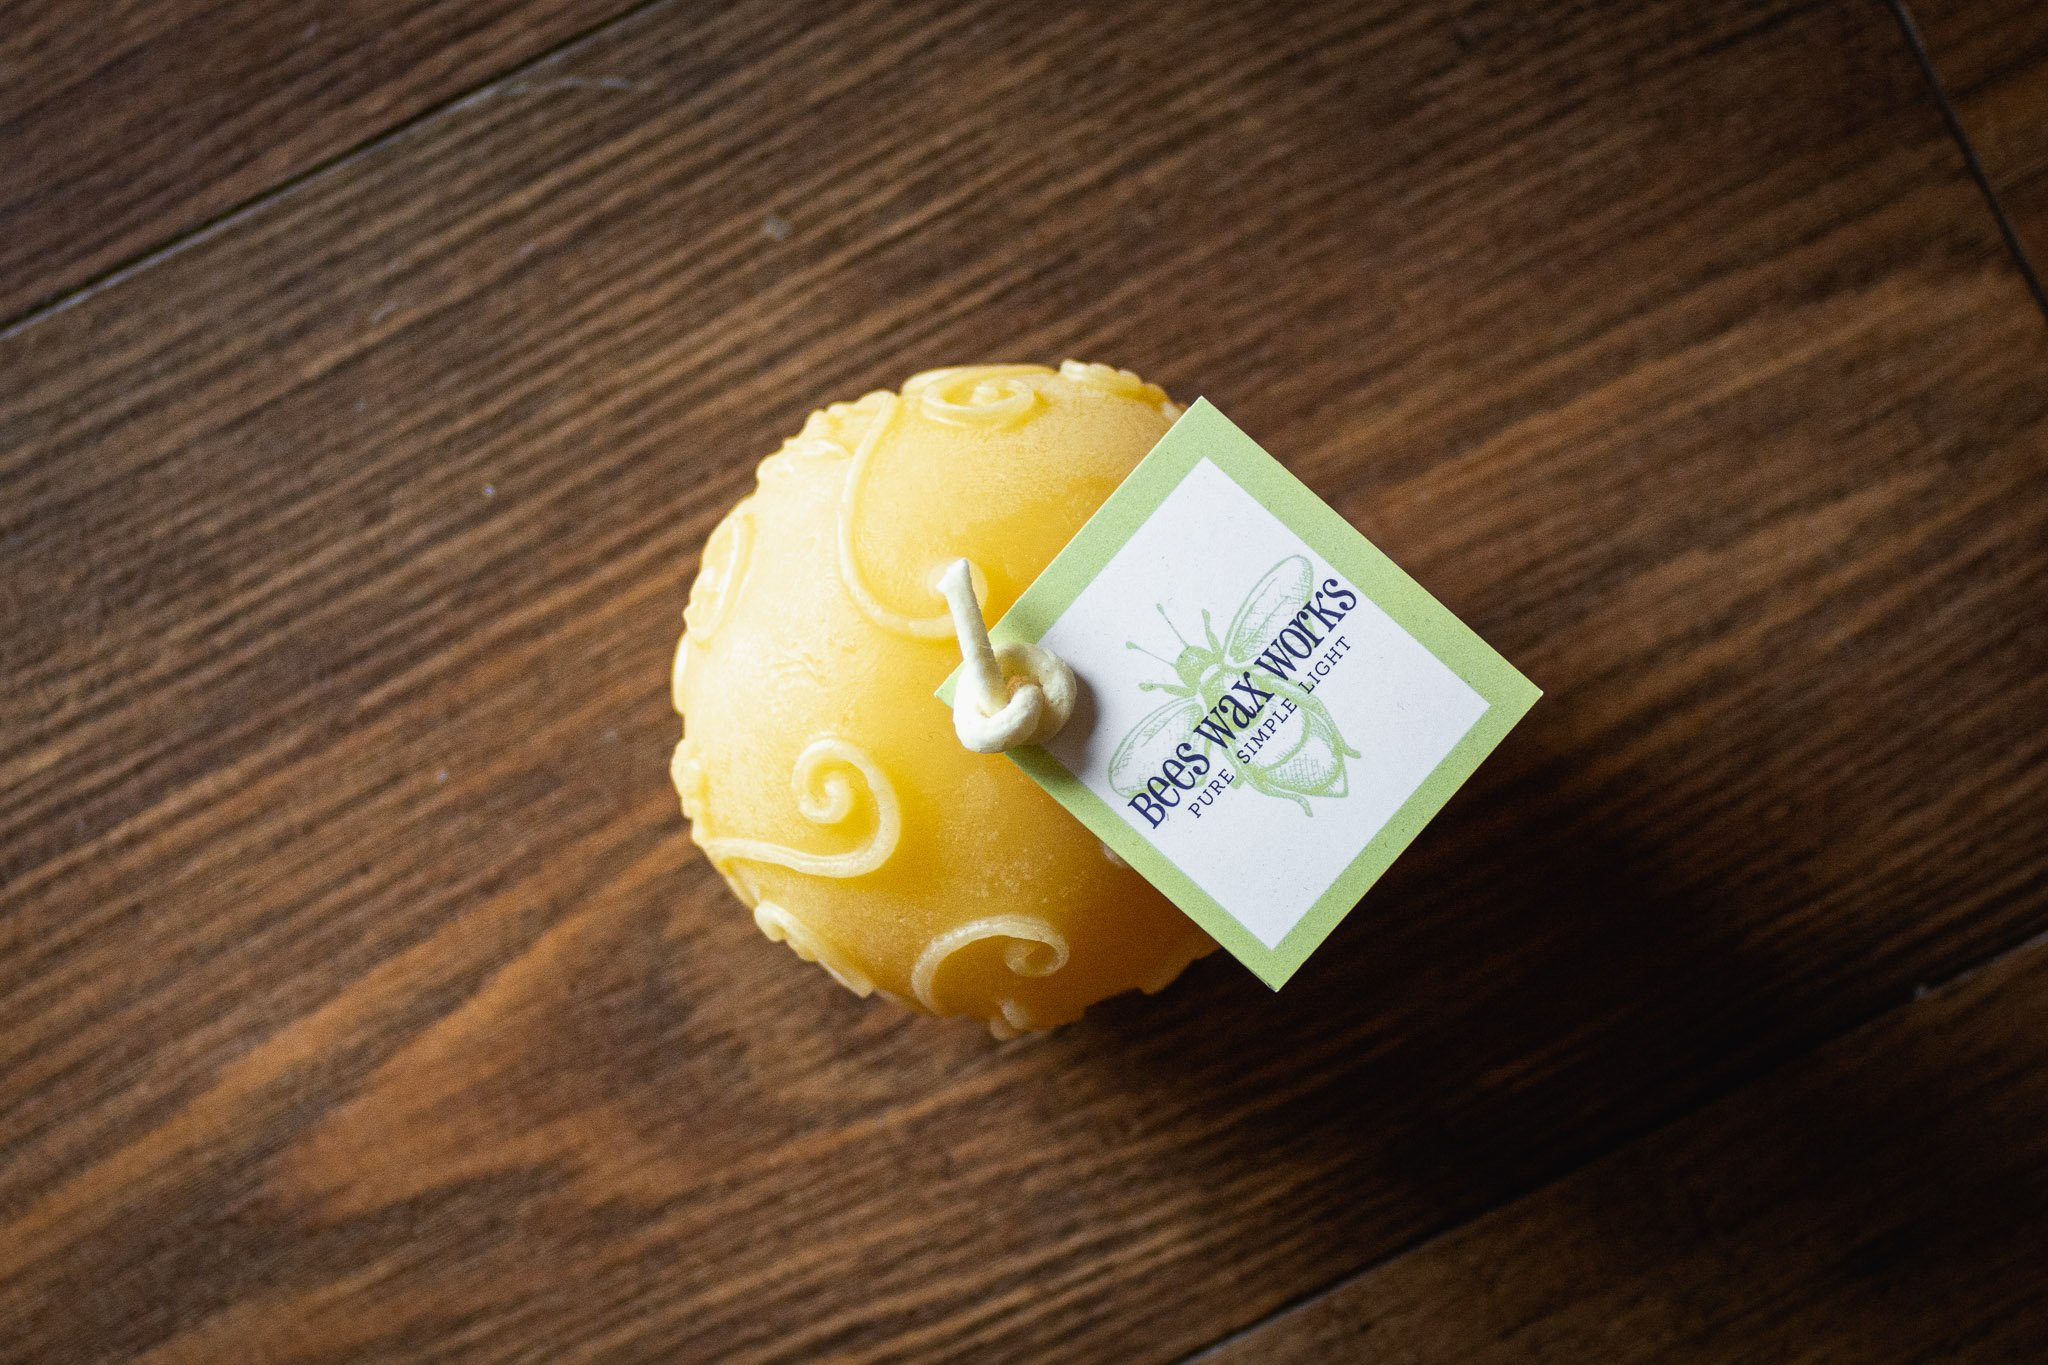 Rustic Fern Globe Candle By Bees Wax Works